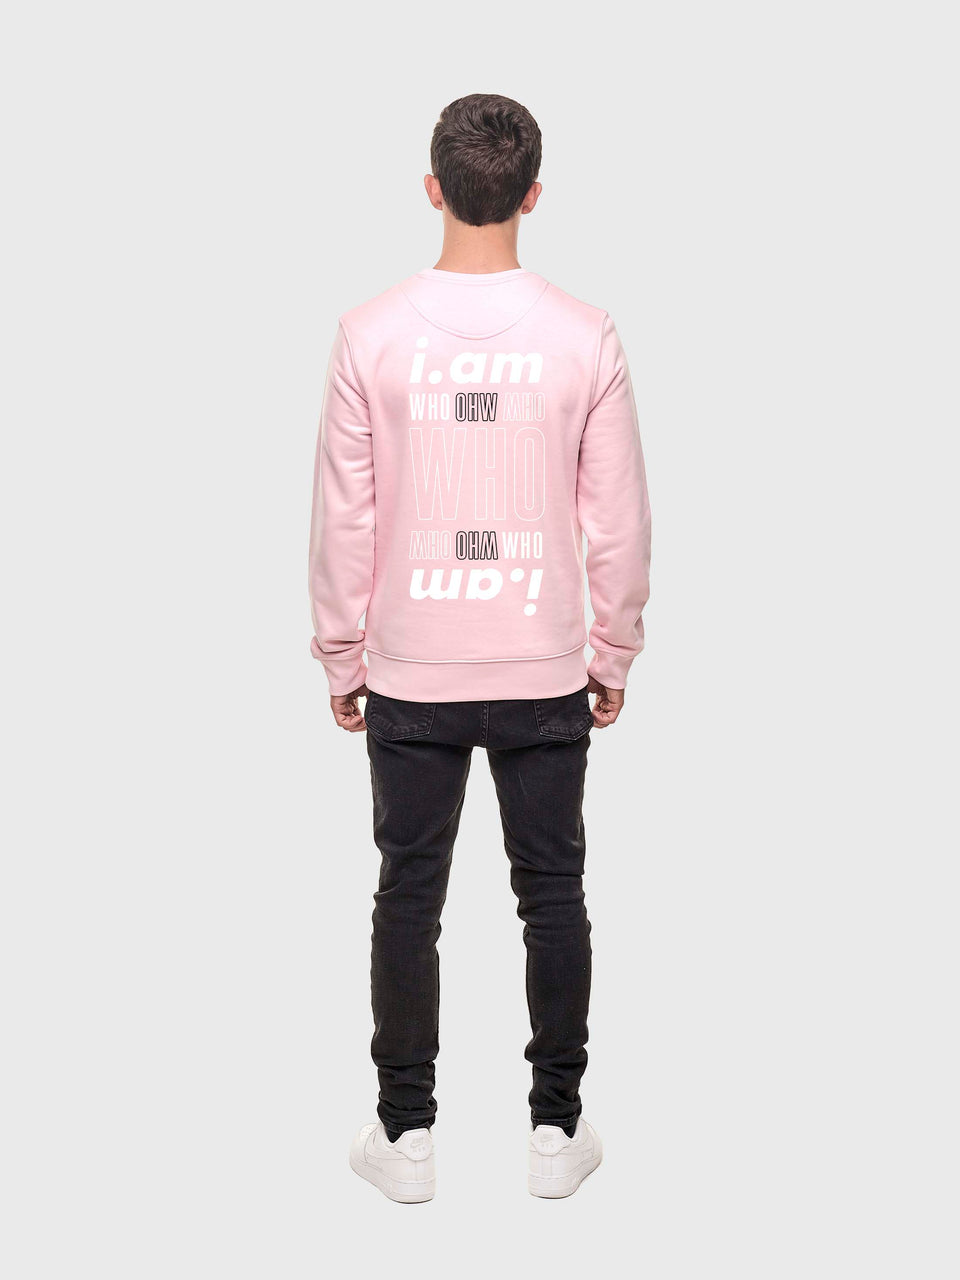 I am who I am - Pink - Unisex sweatshirt